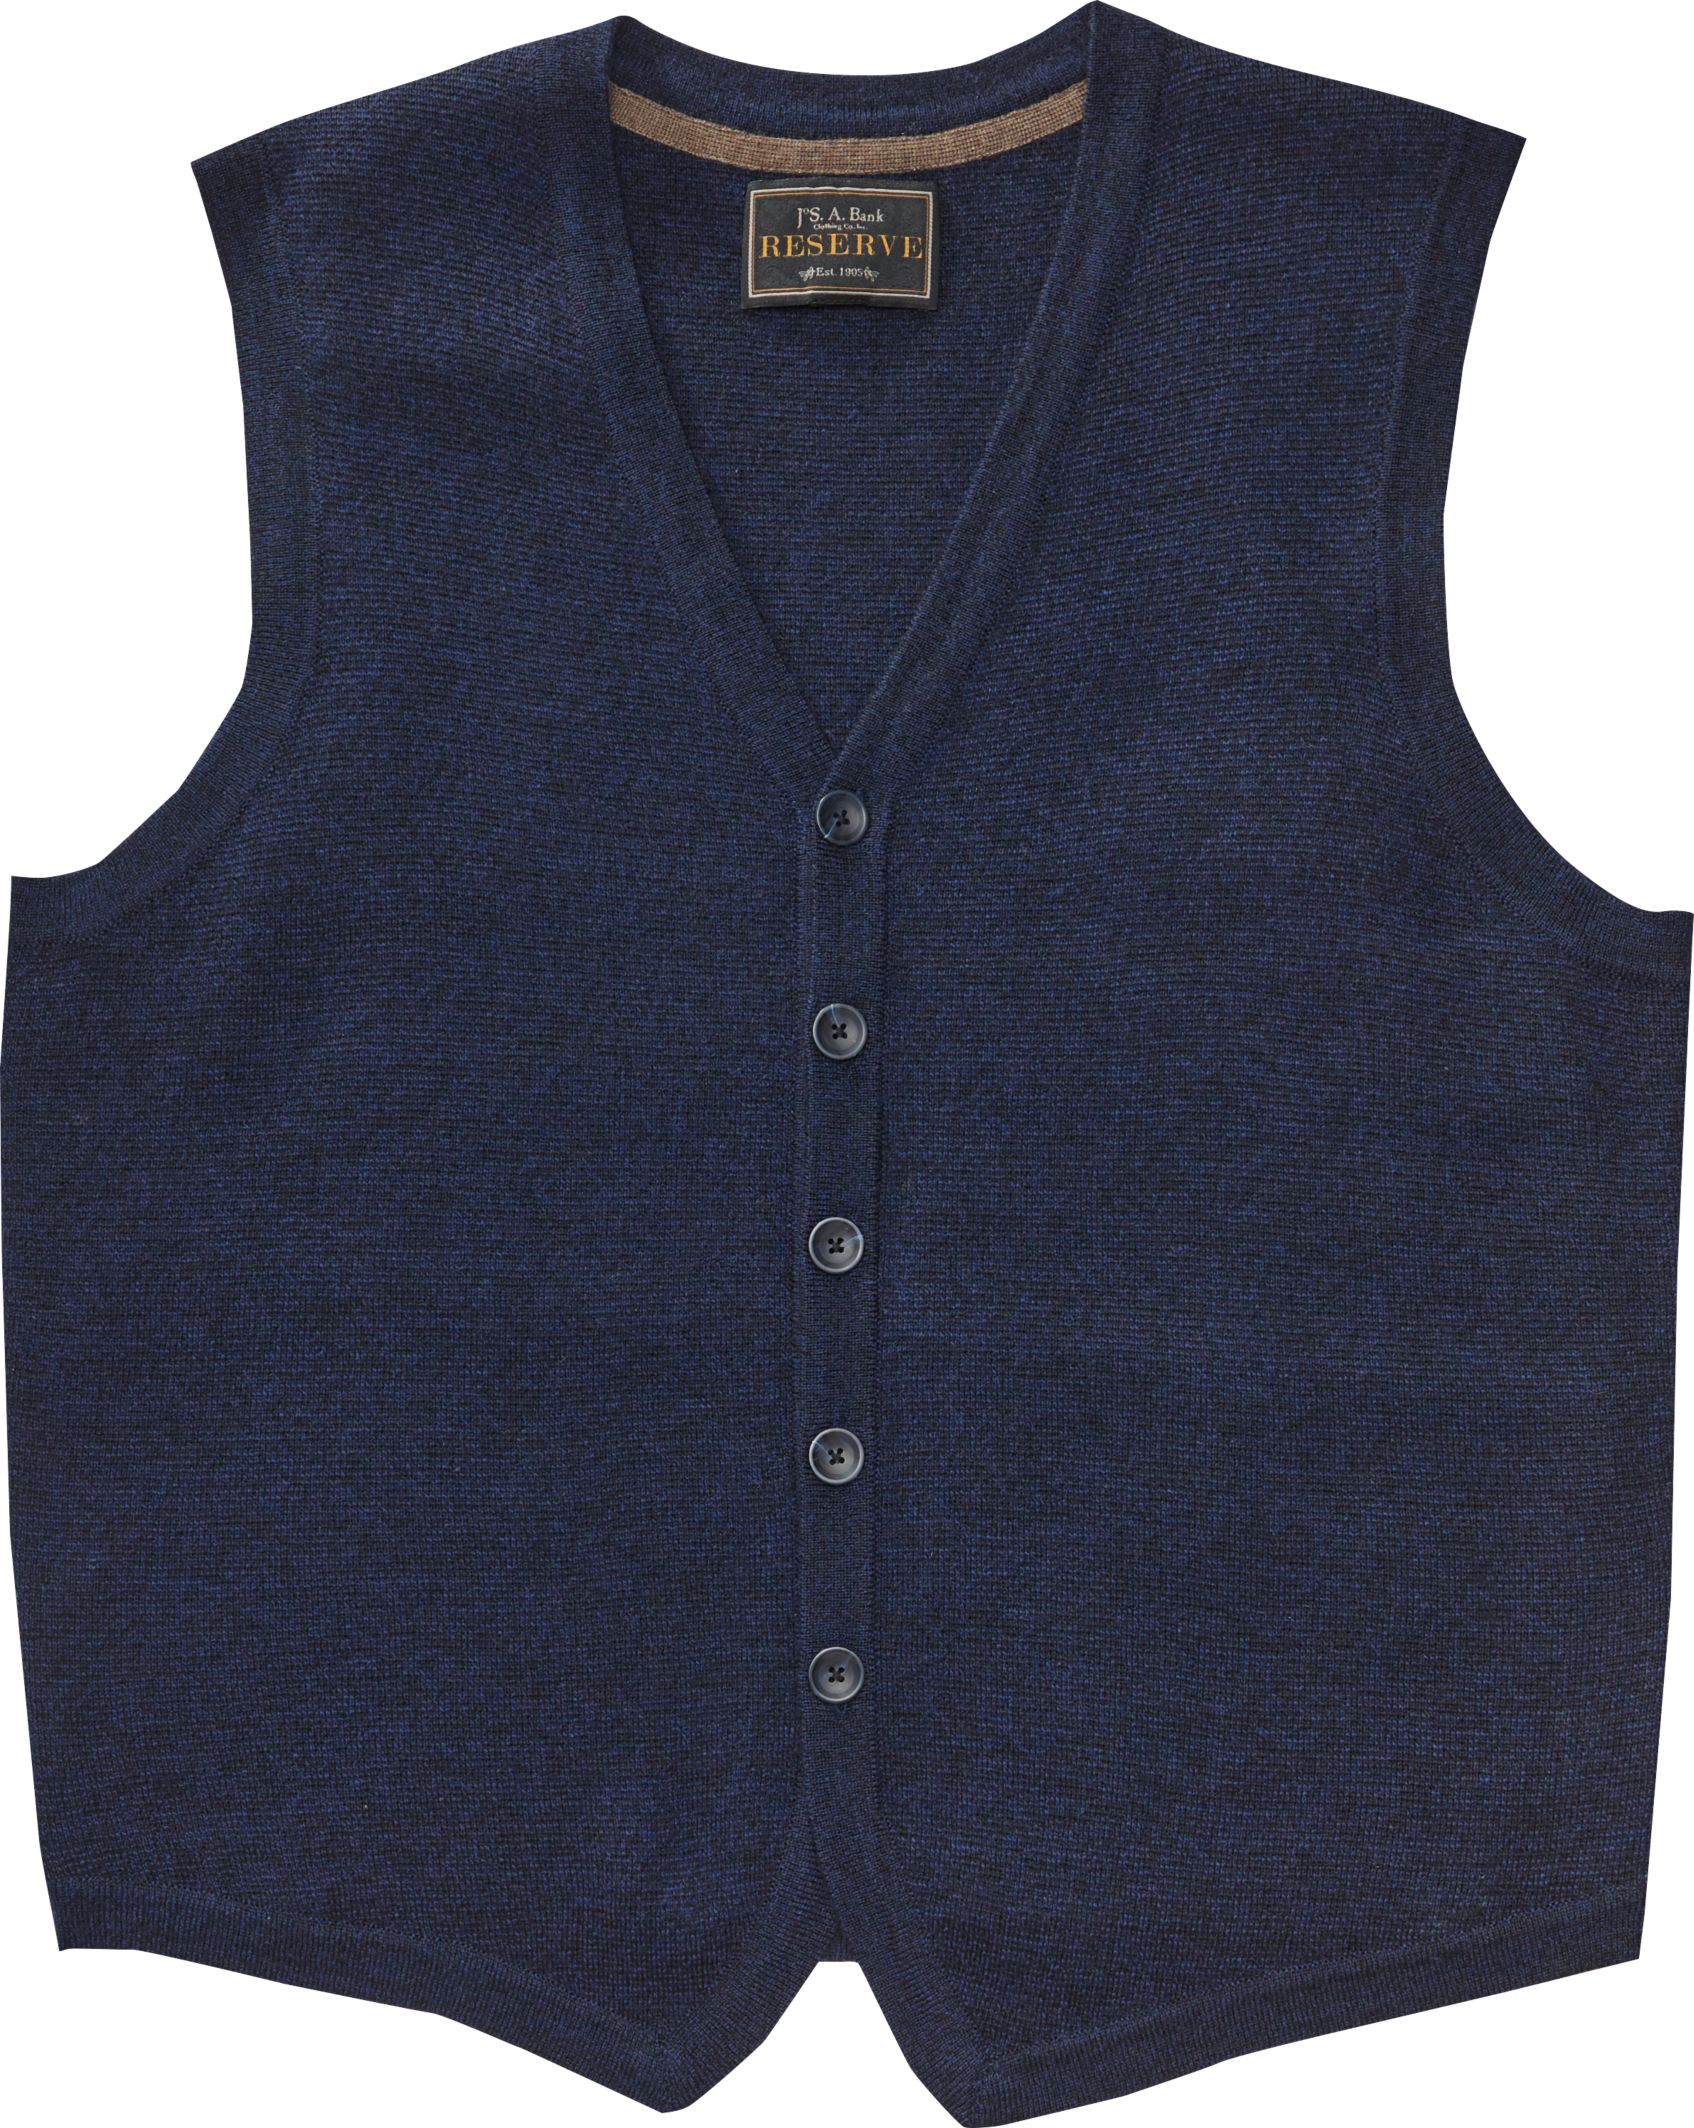 c0d573eca3d0 Reserve Collection Merino Wool Blend Button Front Sweater Vest ...